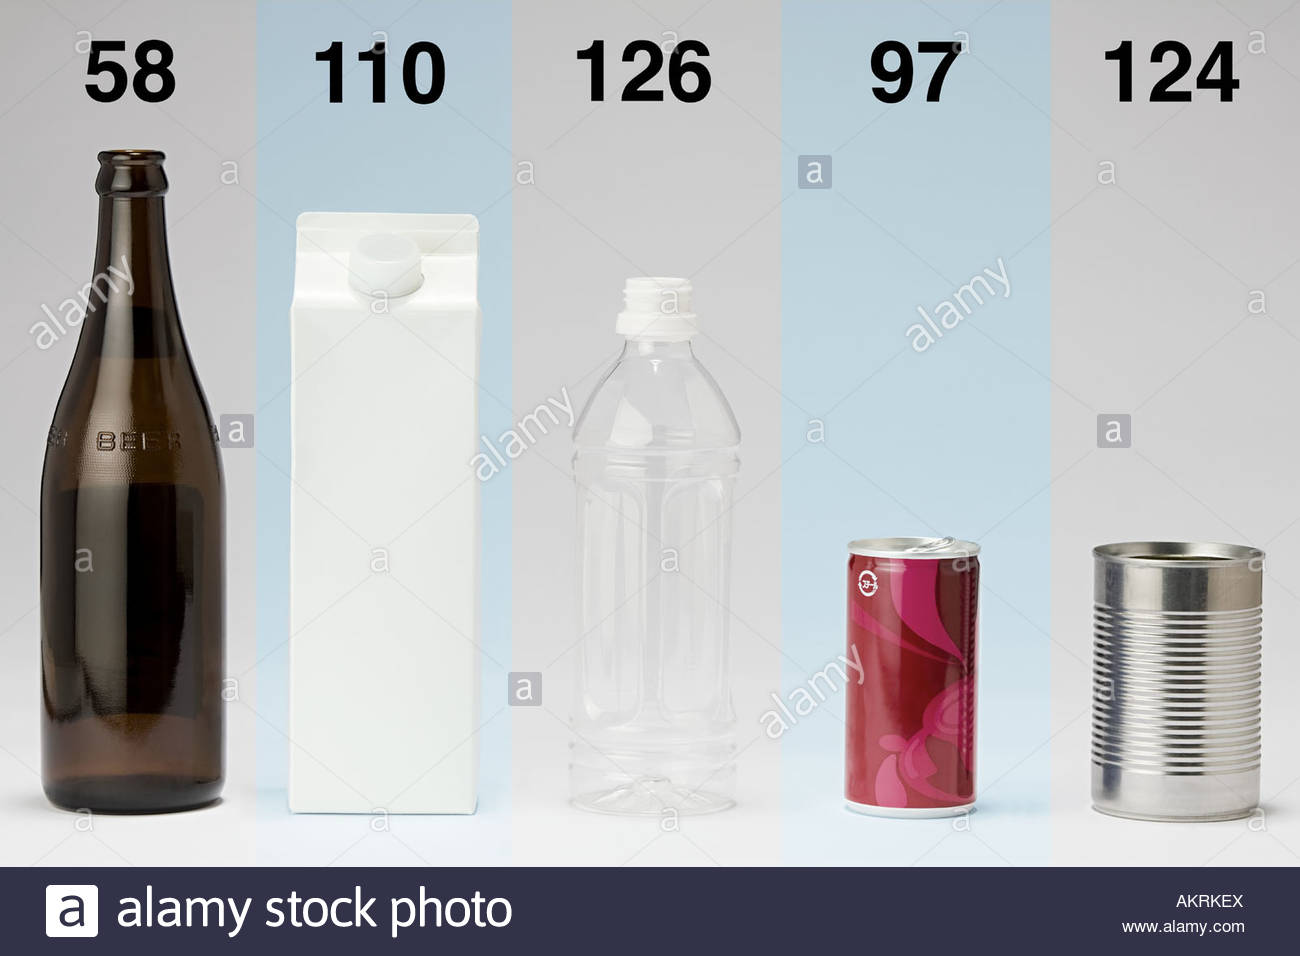 Bottle carton and tin can in a row - Stock Image